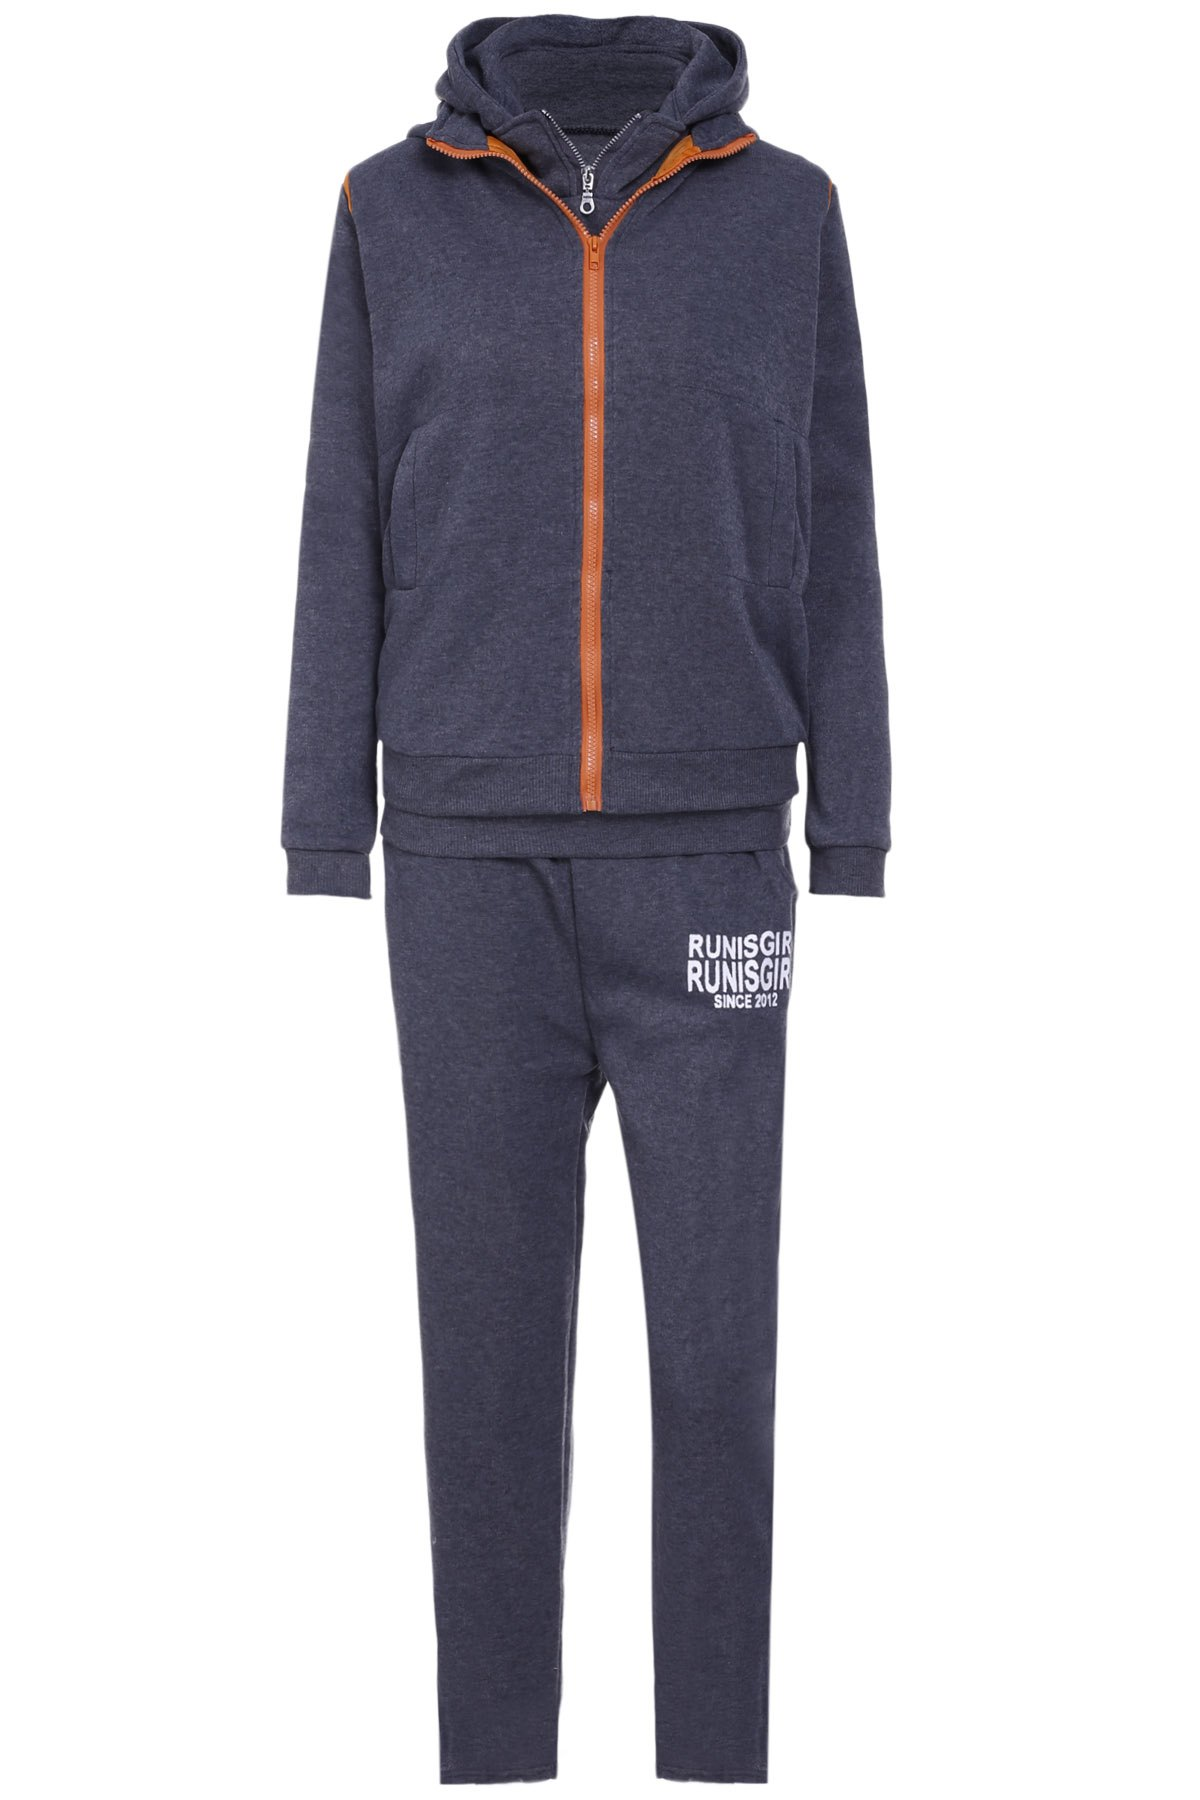 Active Graphic Hoodie and Flocking Waistcoat and Pants фото